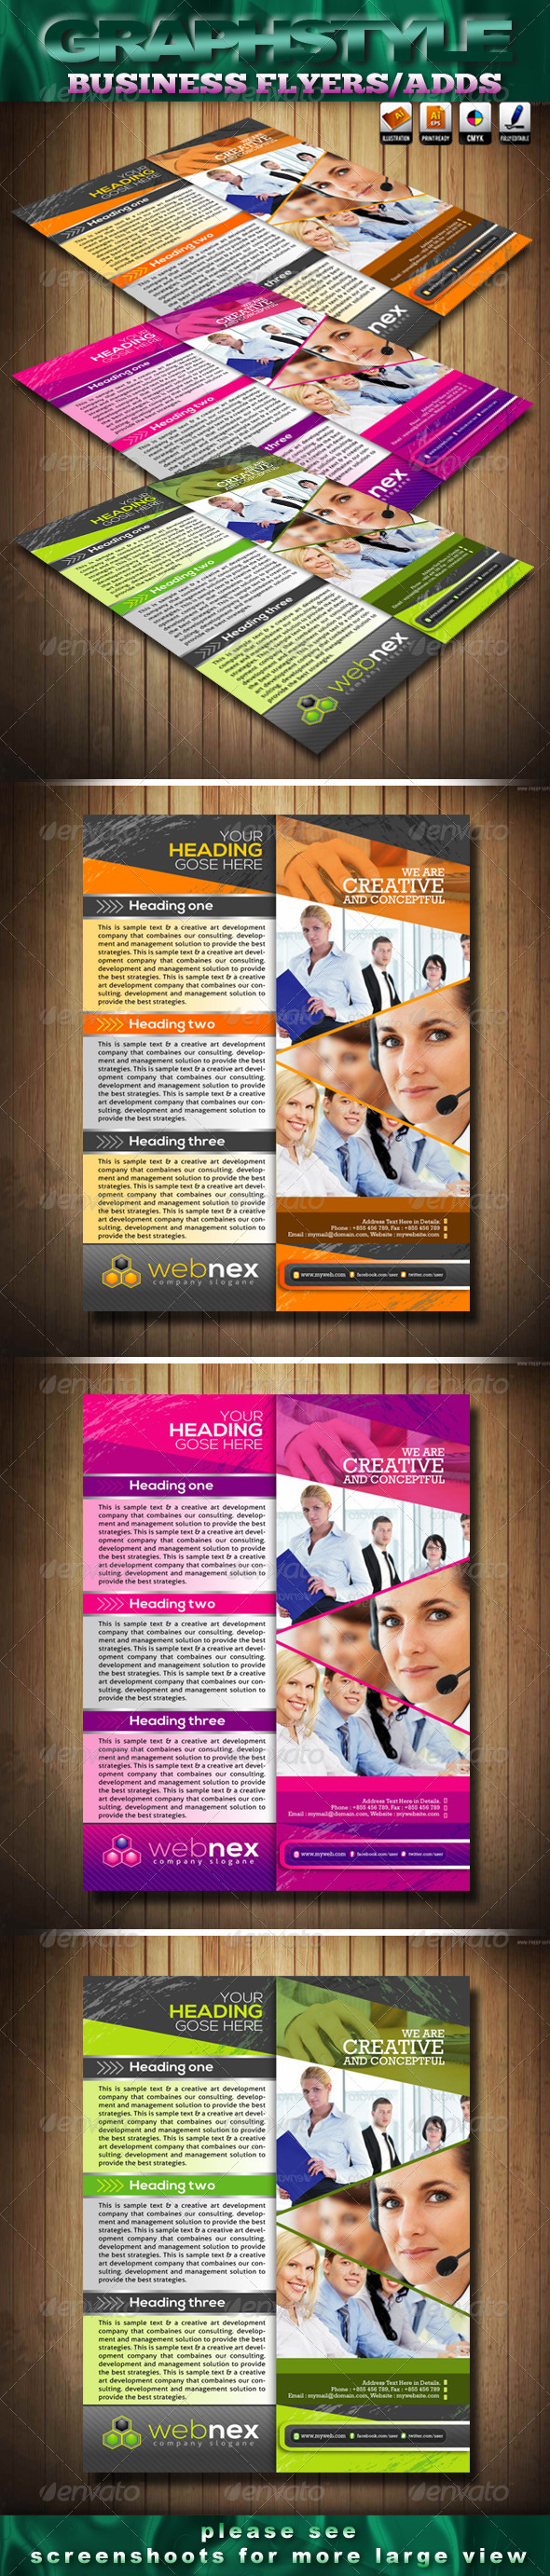 GraphicRiver Webnex Business Flyers Adds 3800281